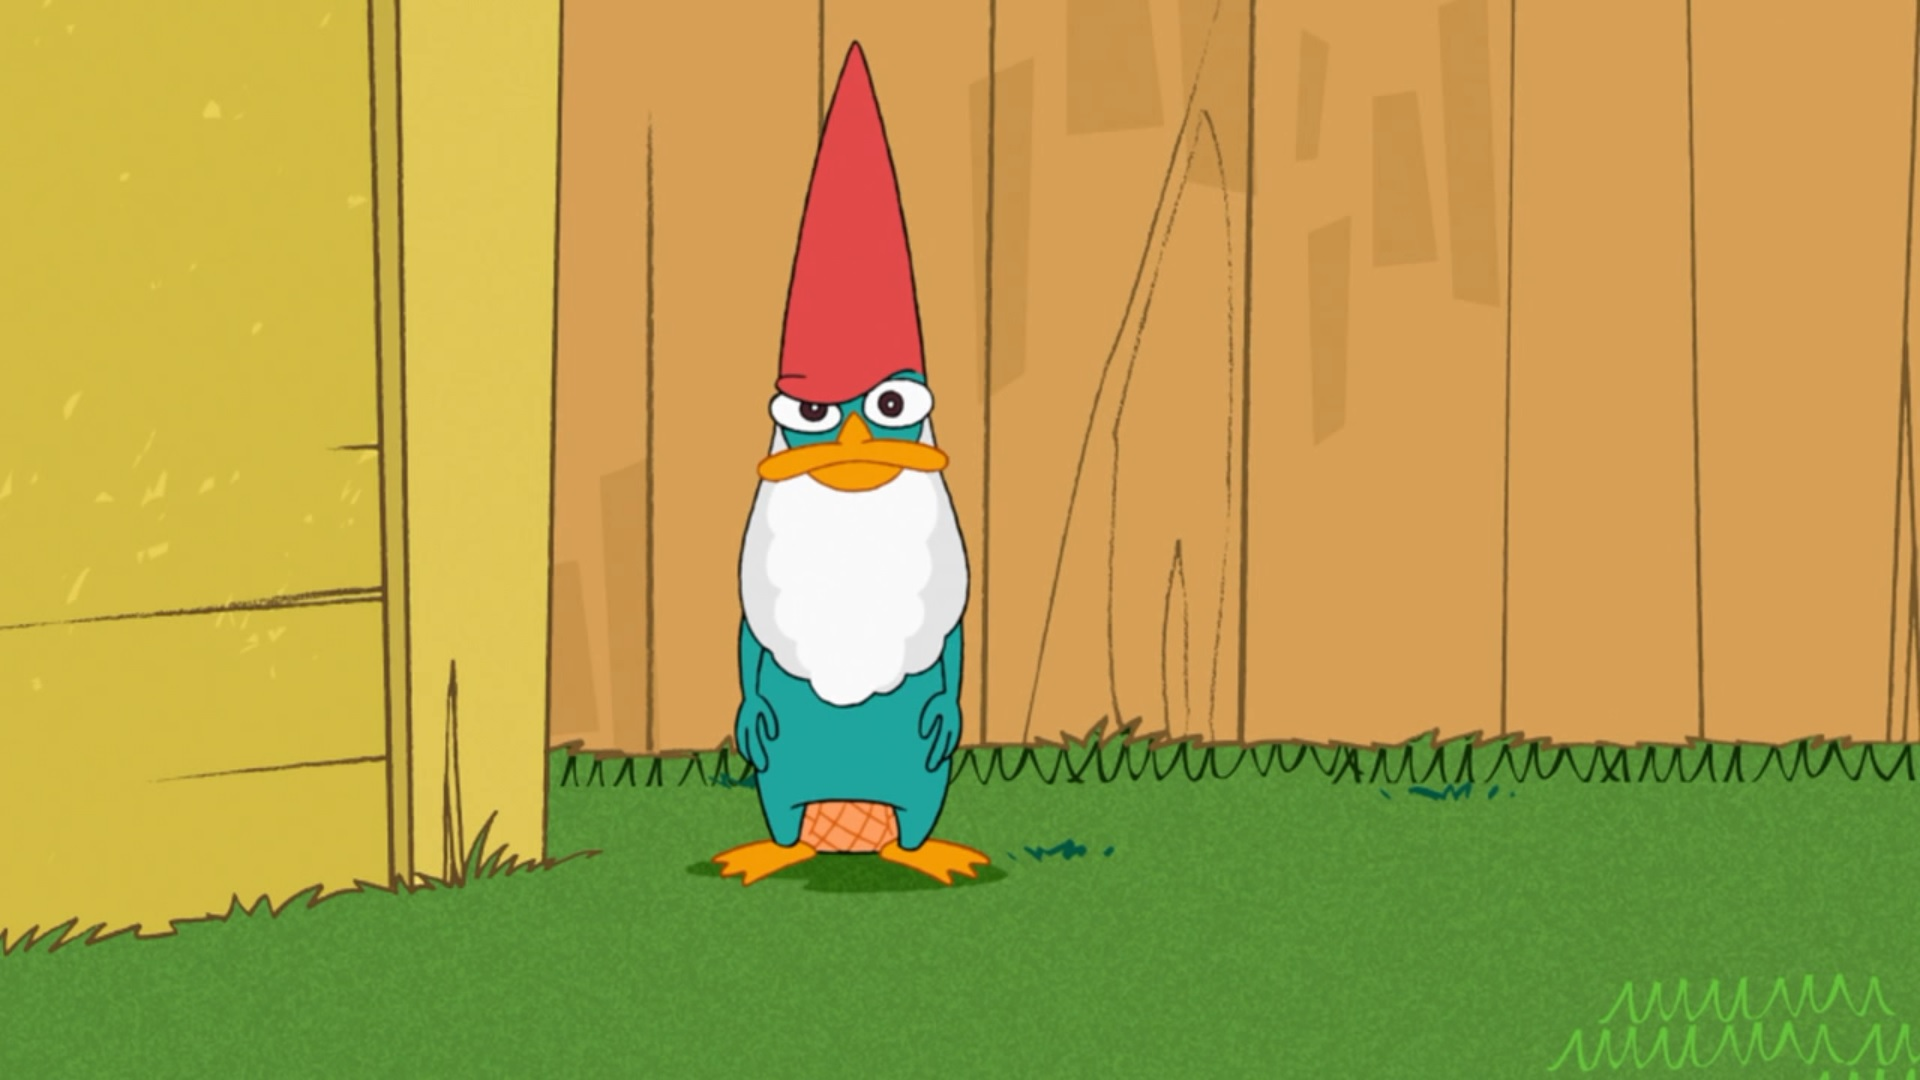 Perry As A Lawn Gnome